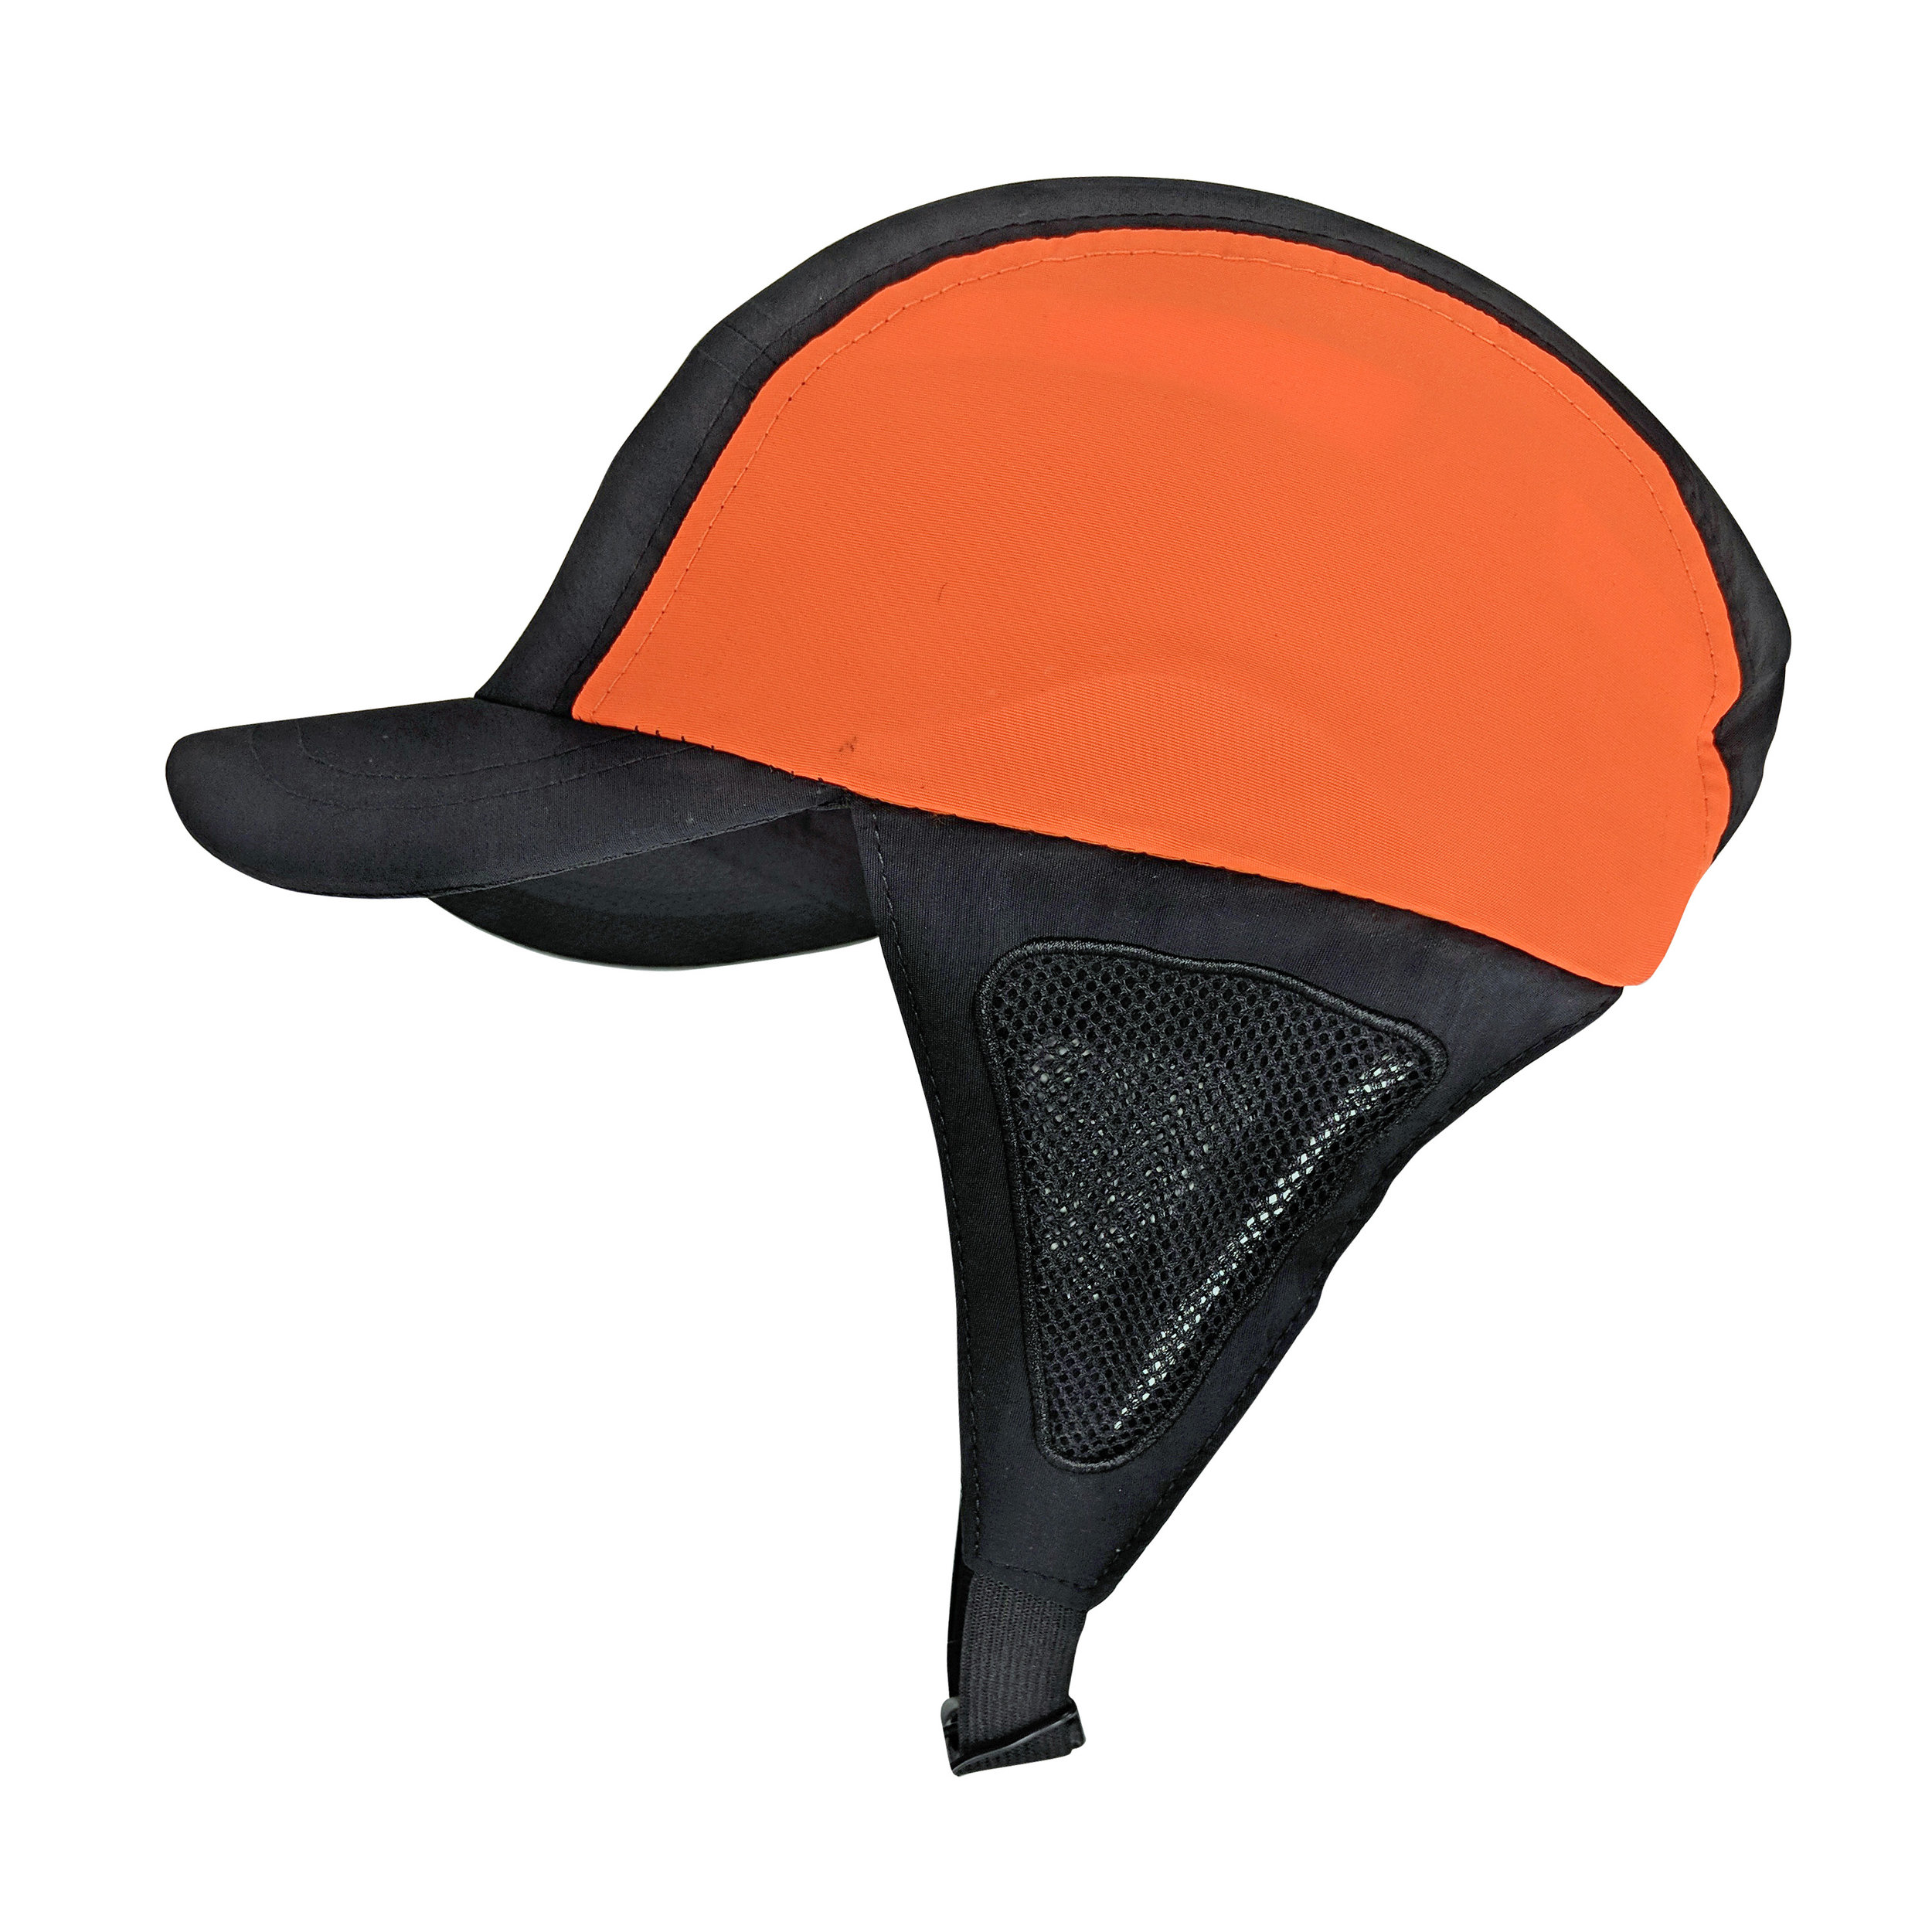 surf-brain-black-orange-side-2.jpg